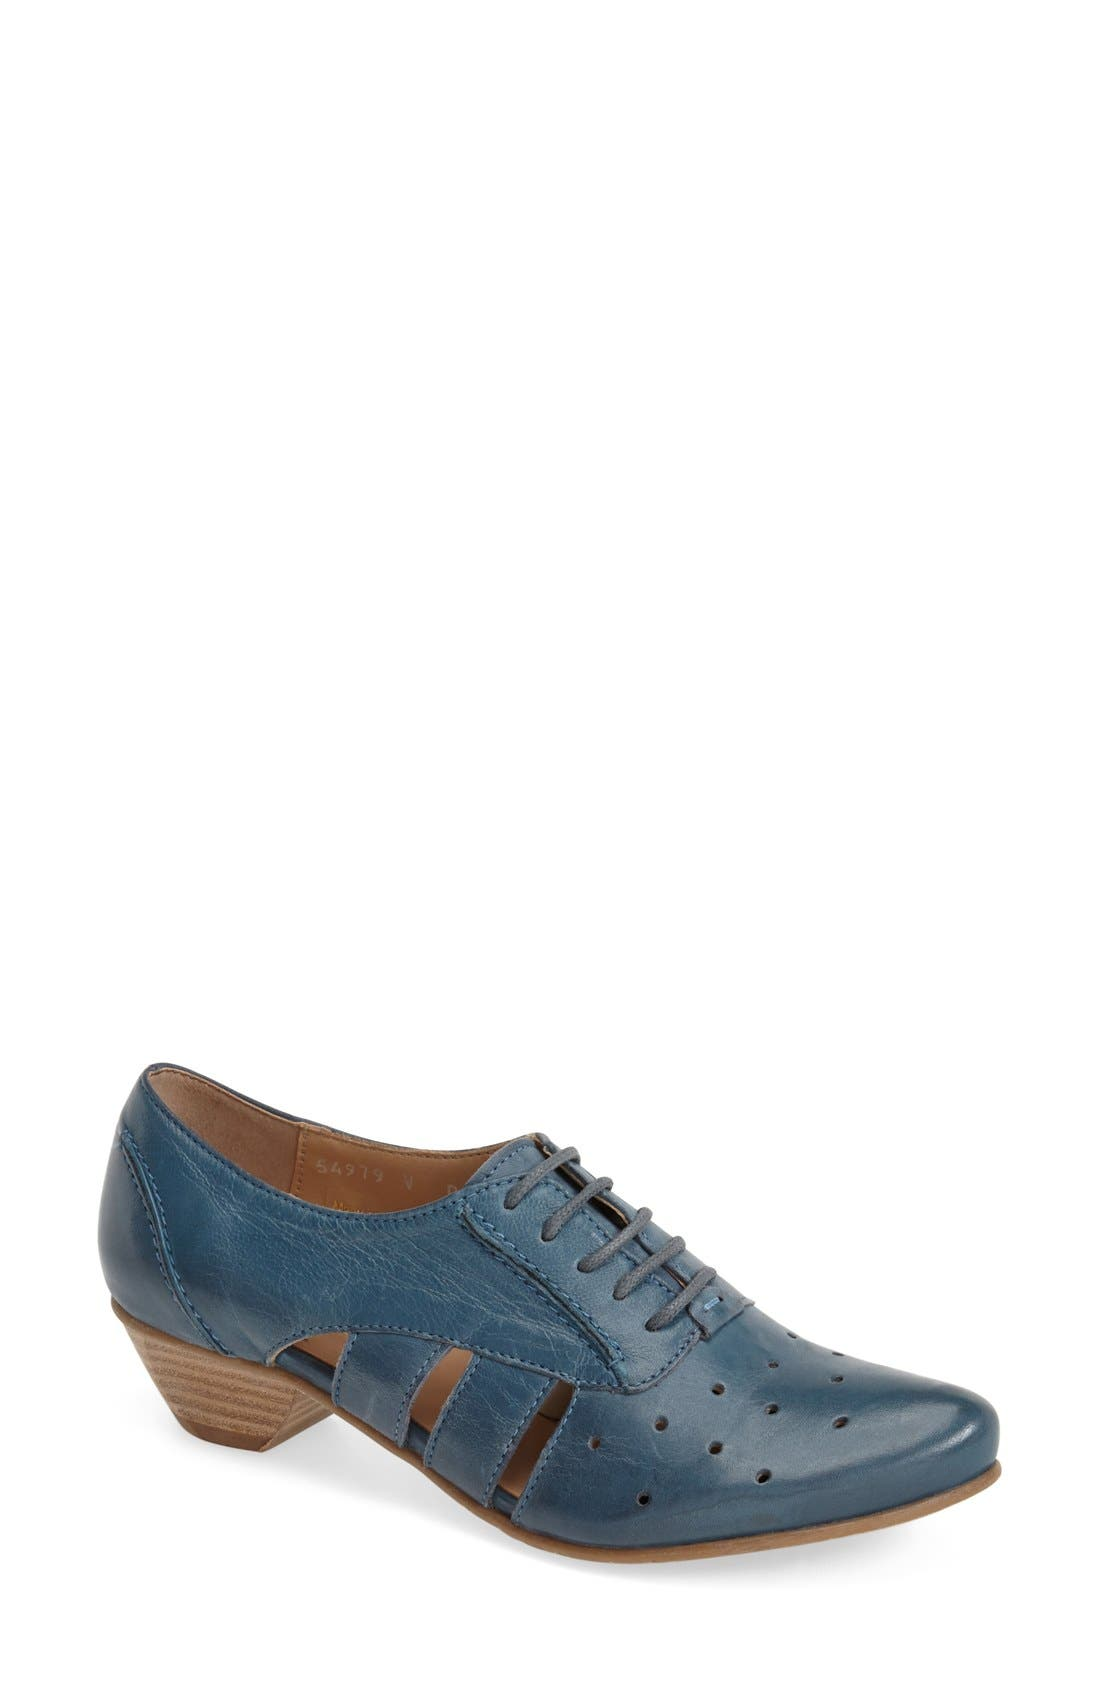 'VO92' Perforated Leather Pump,                         Main,                         color, 400